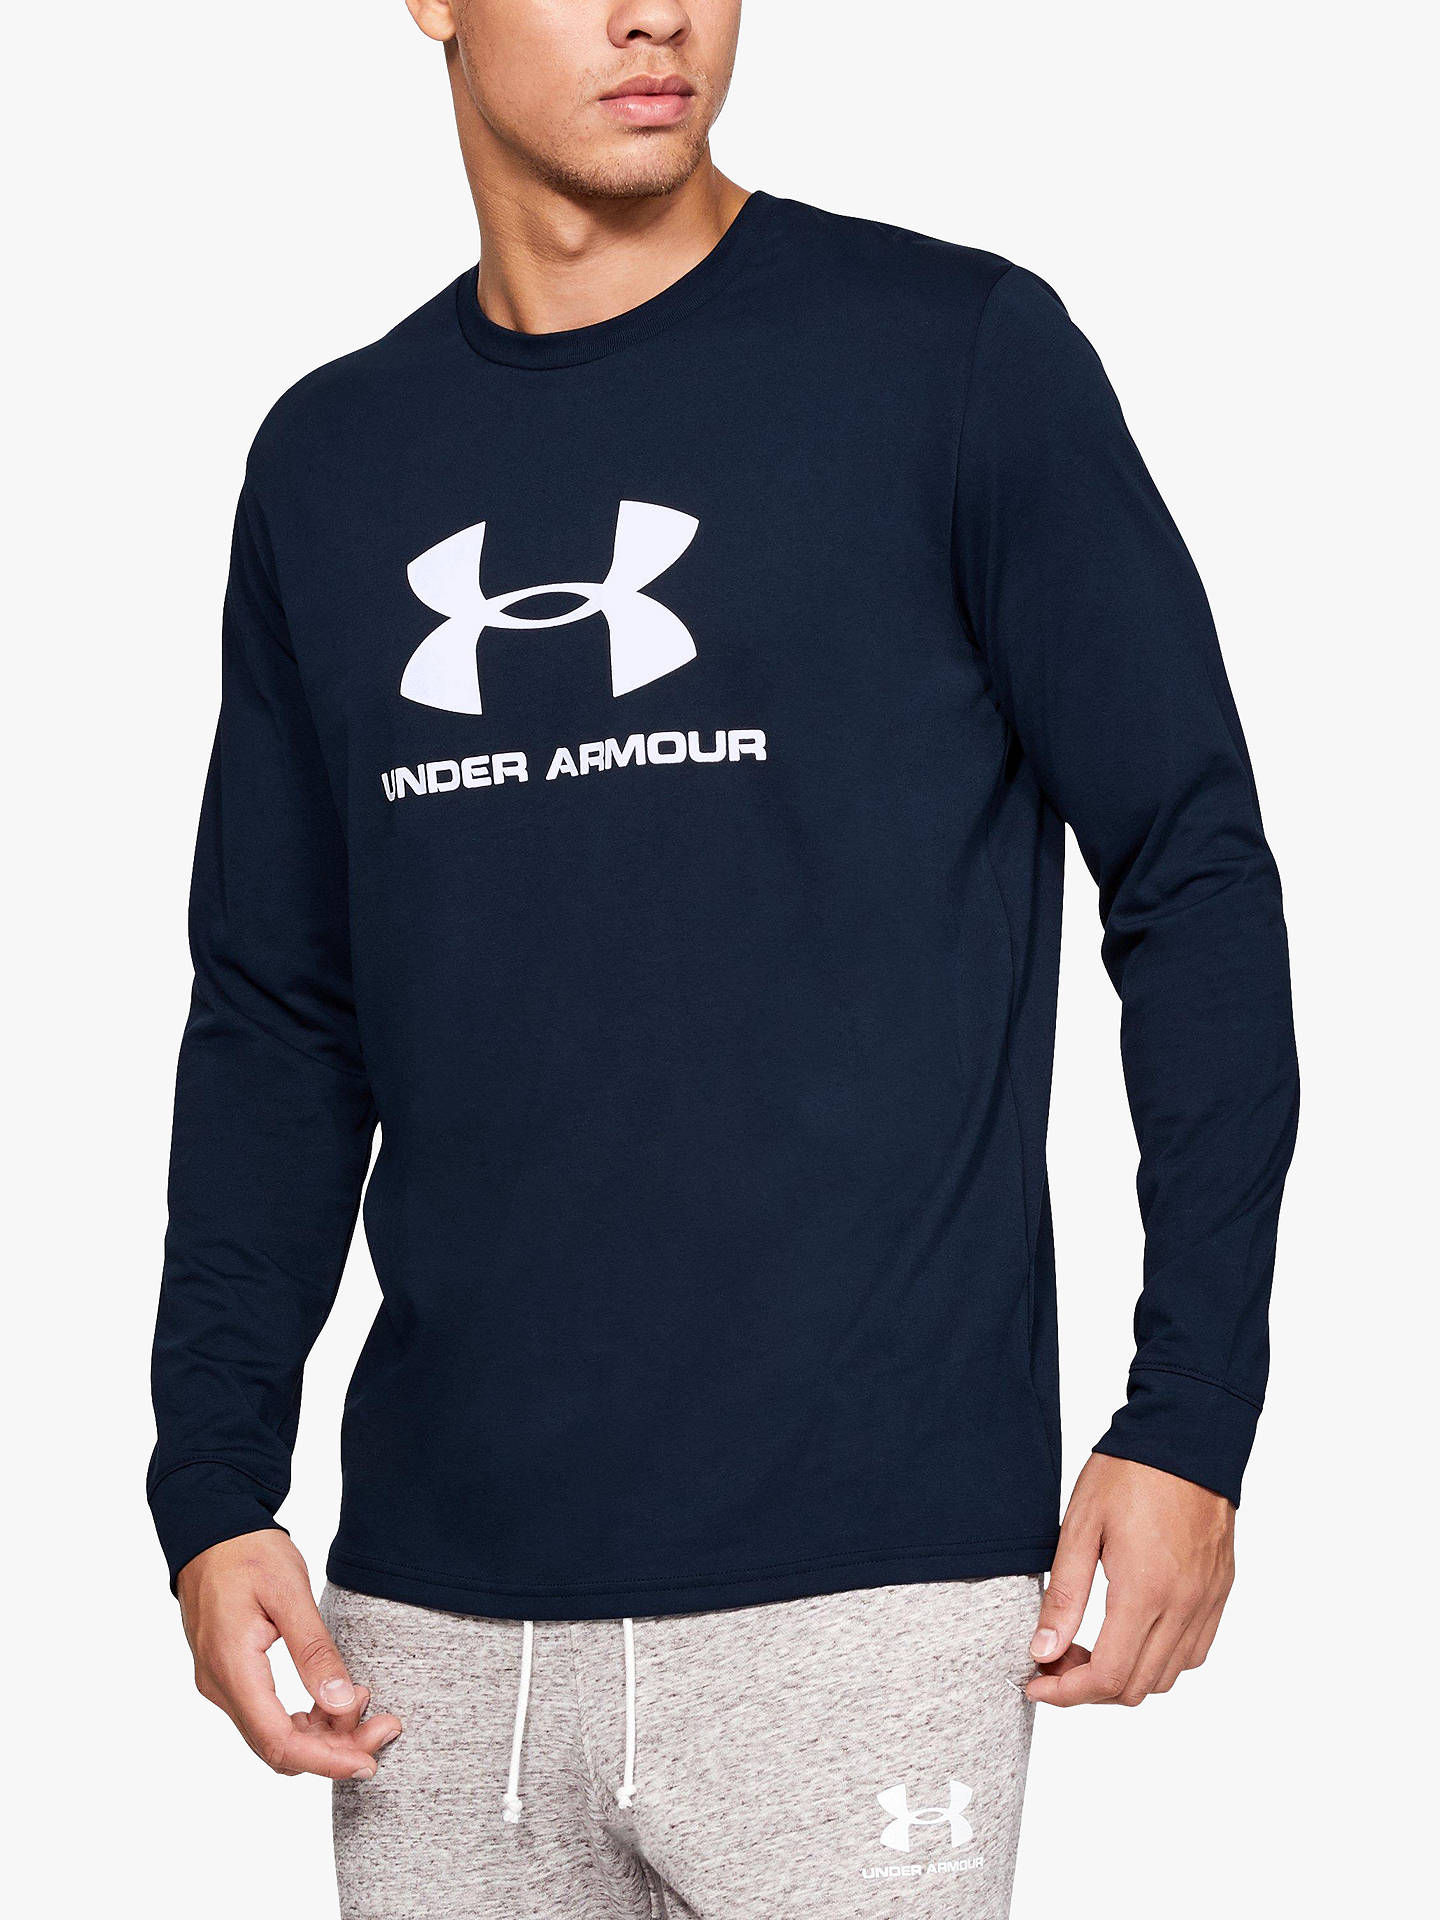 982a5fcb0 Buy Under Armour Sportstyle Logo Long Sleeve Training Top, Navy, S Online  at johnlewis ...